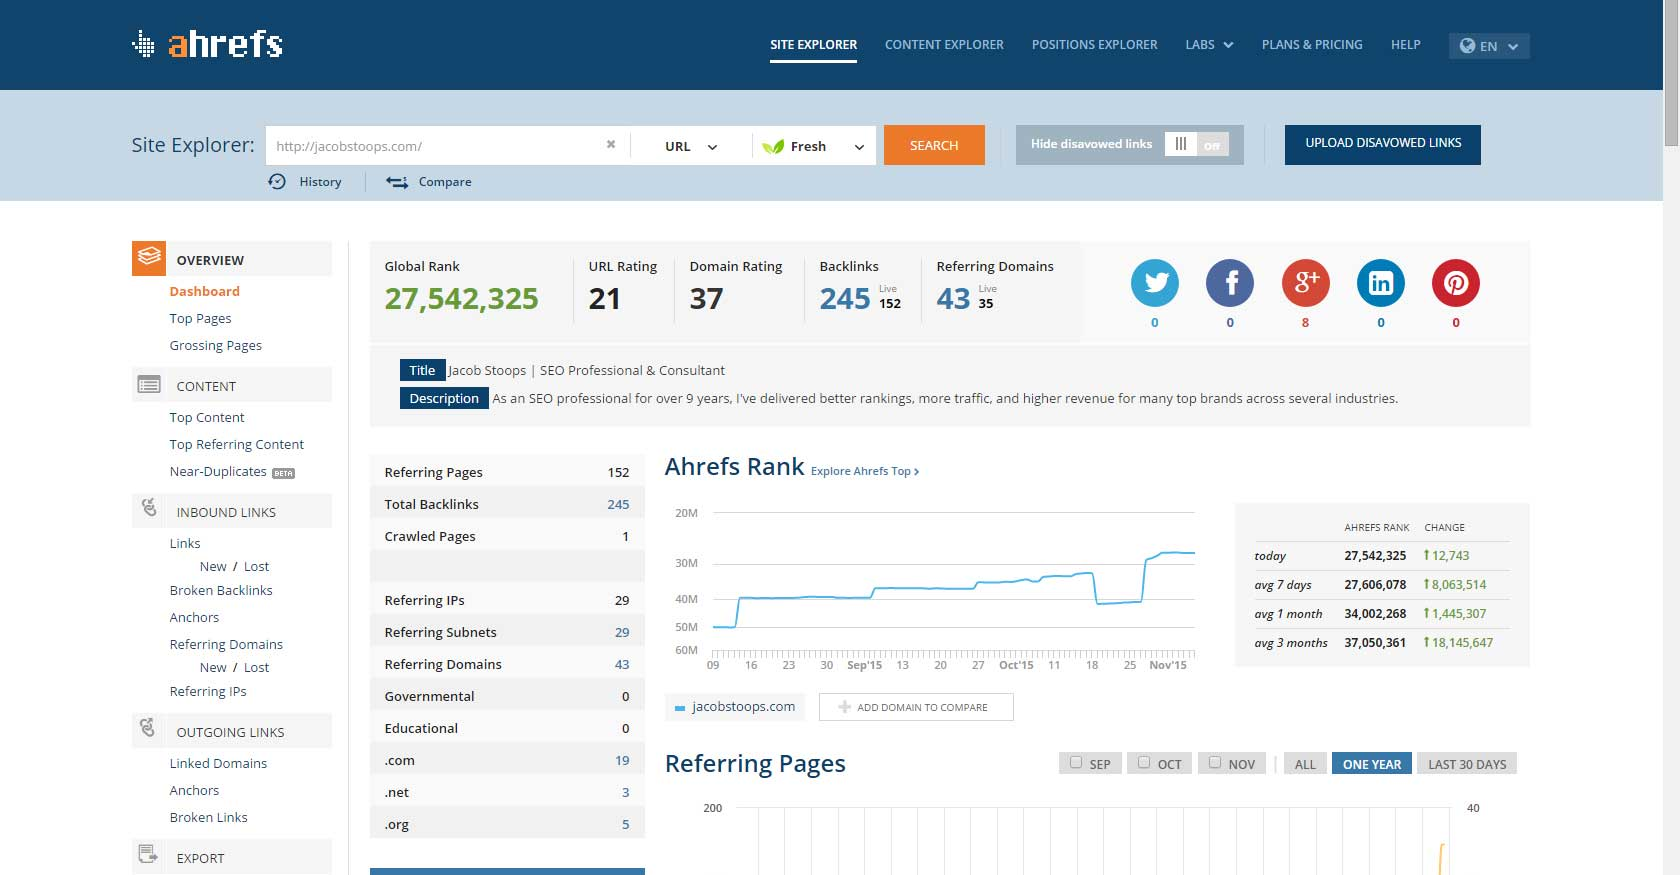 AHrefs review: Site Explorer #1